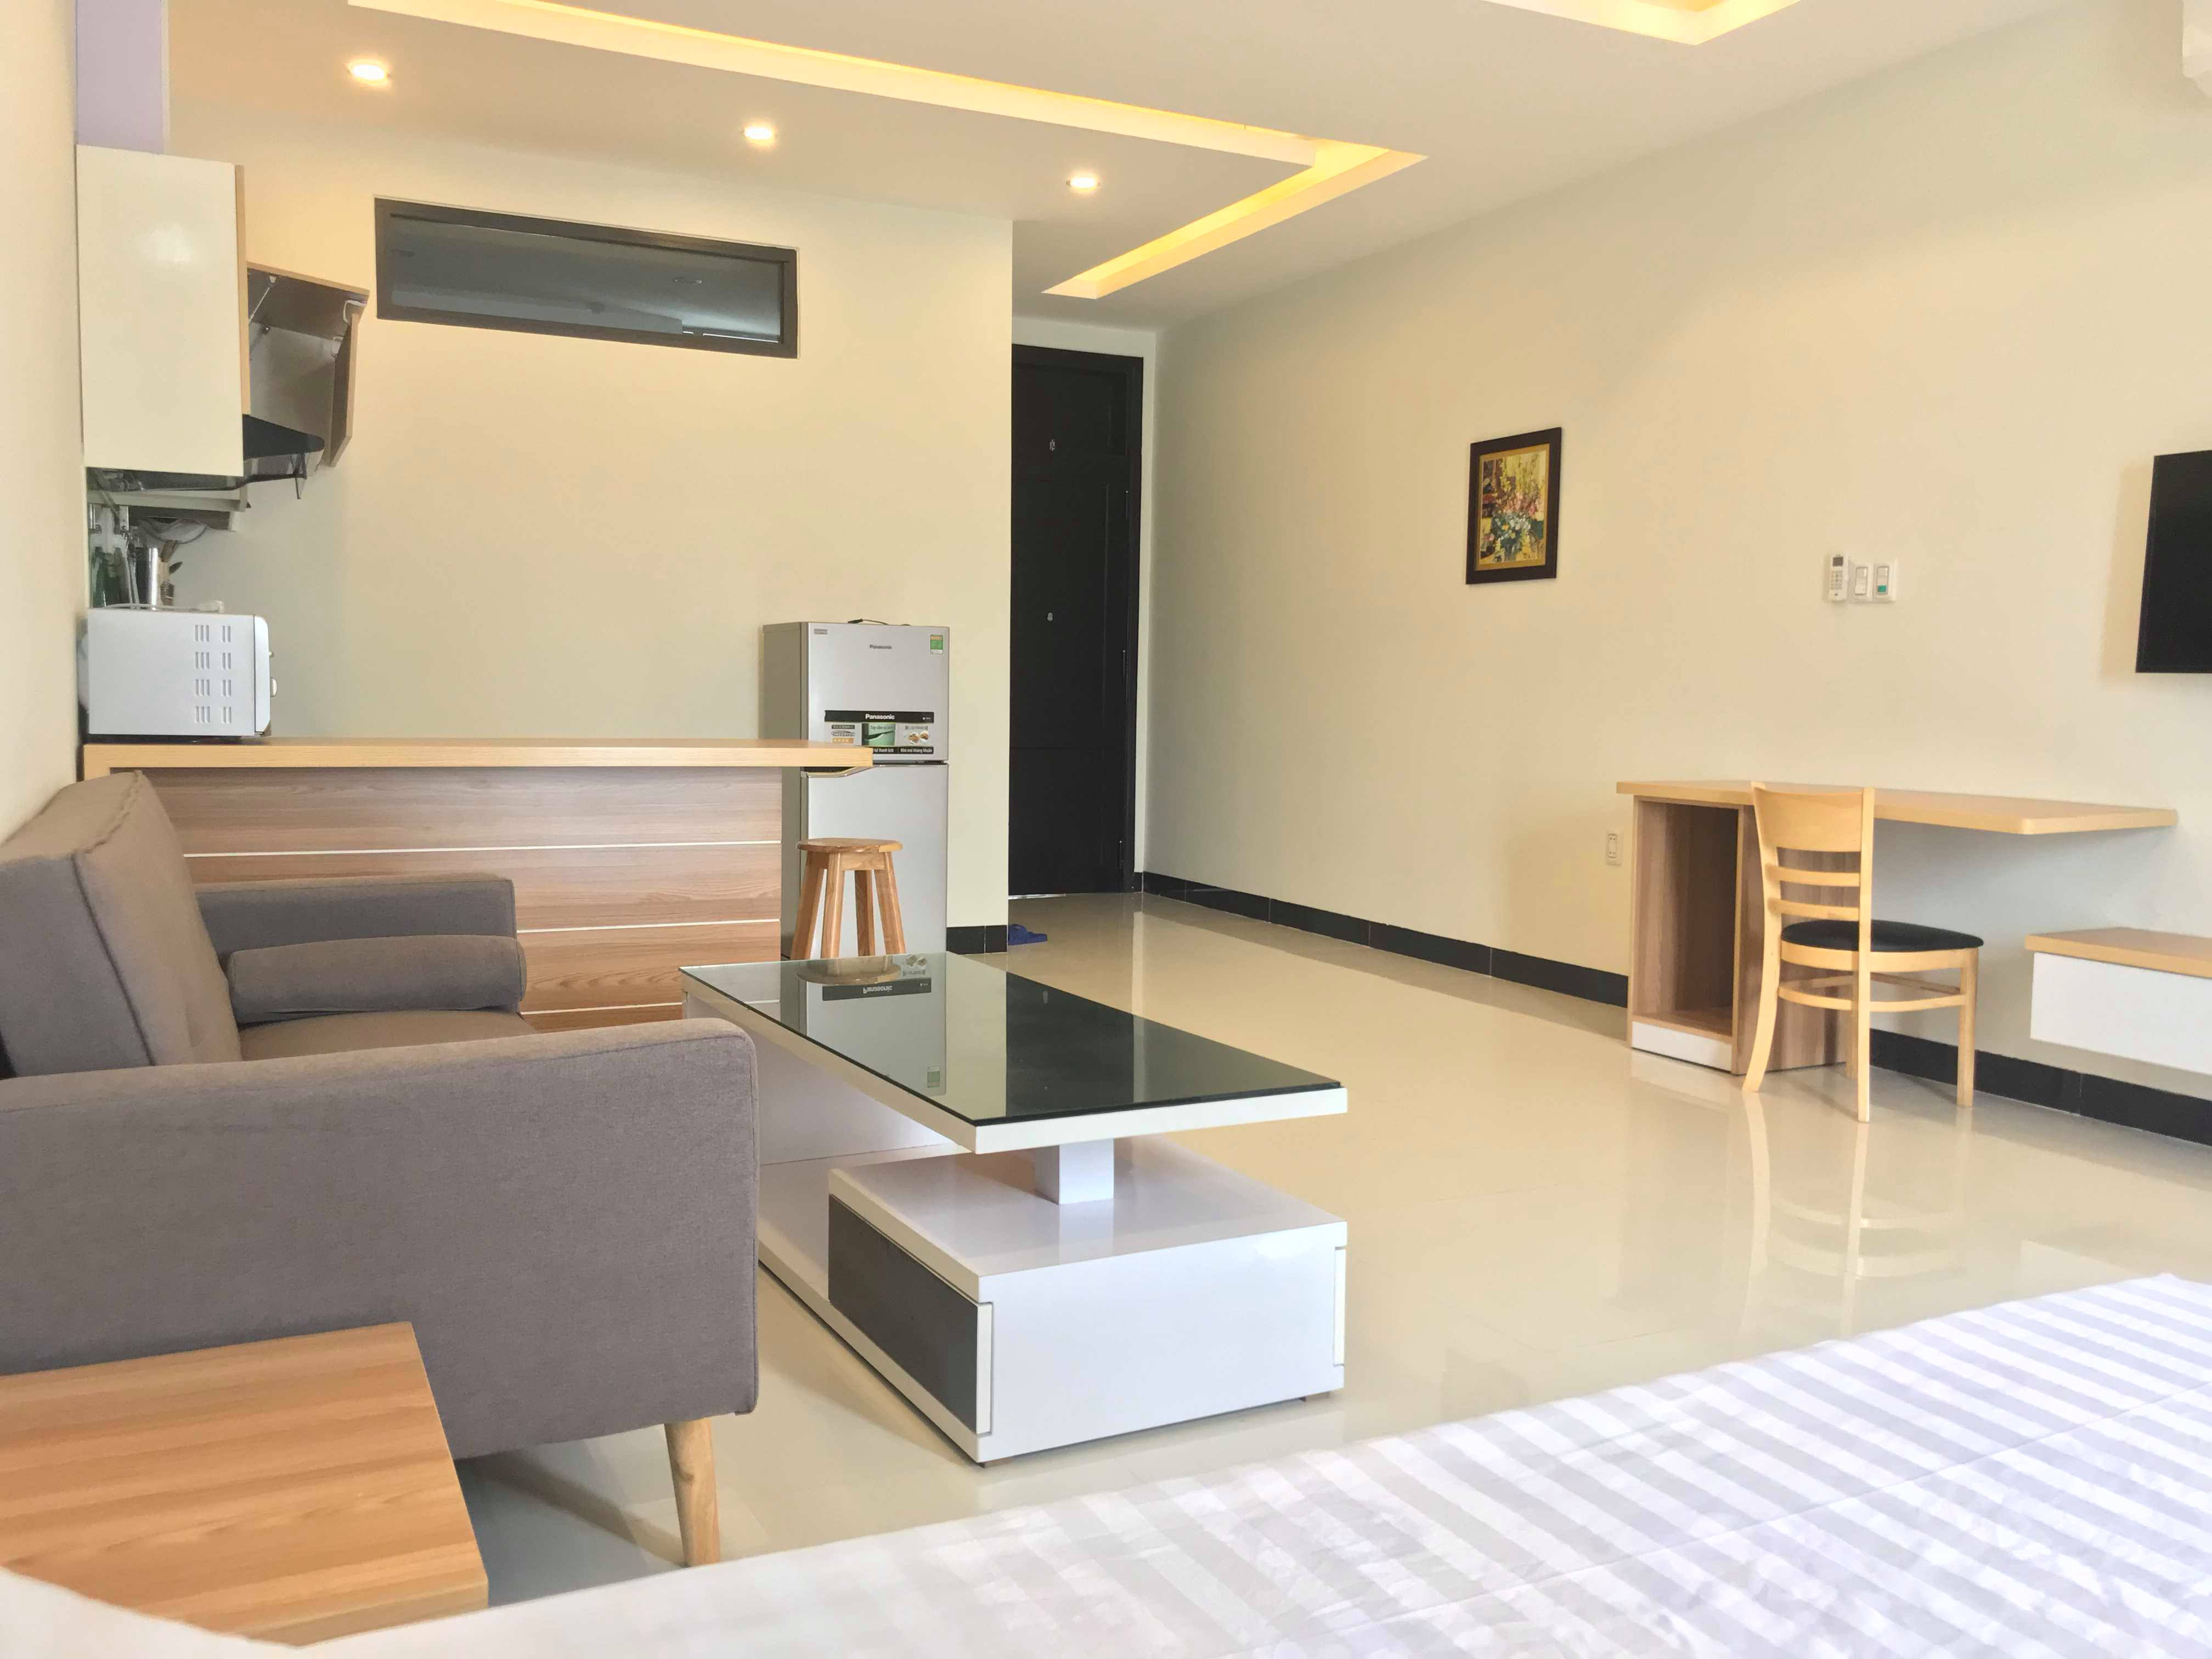 Cheap studio apartment rental in the city center for your business trip to Danang